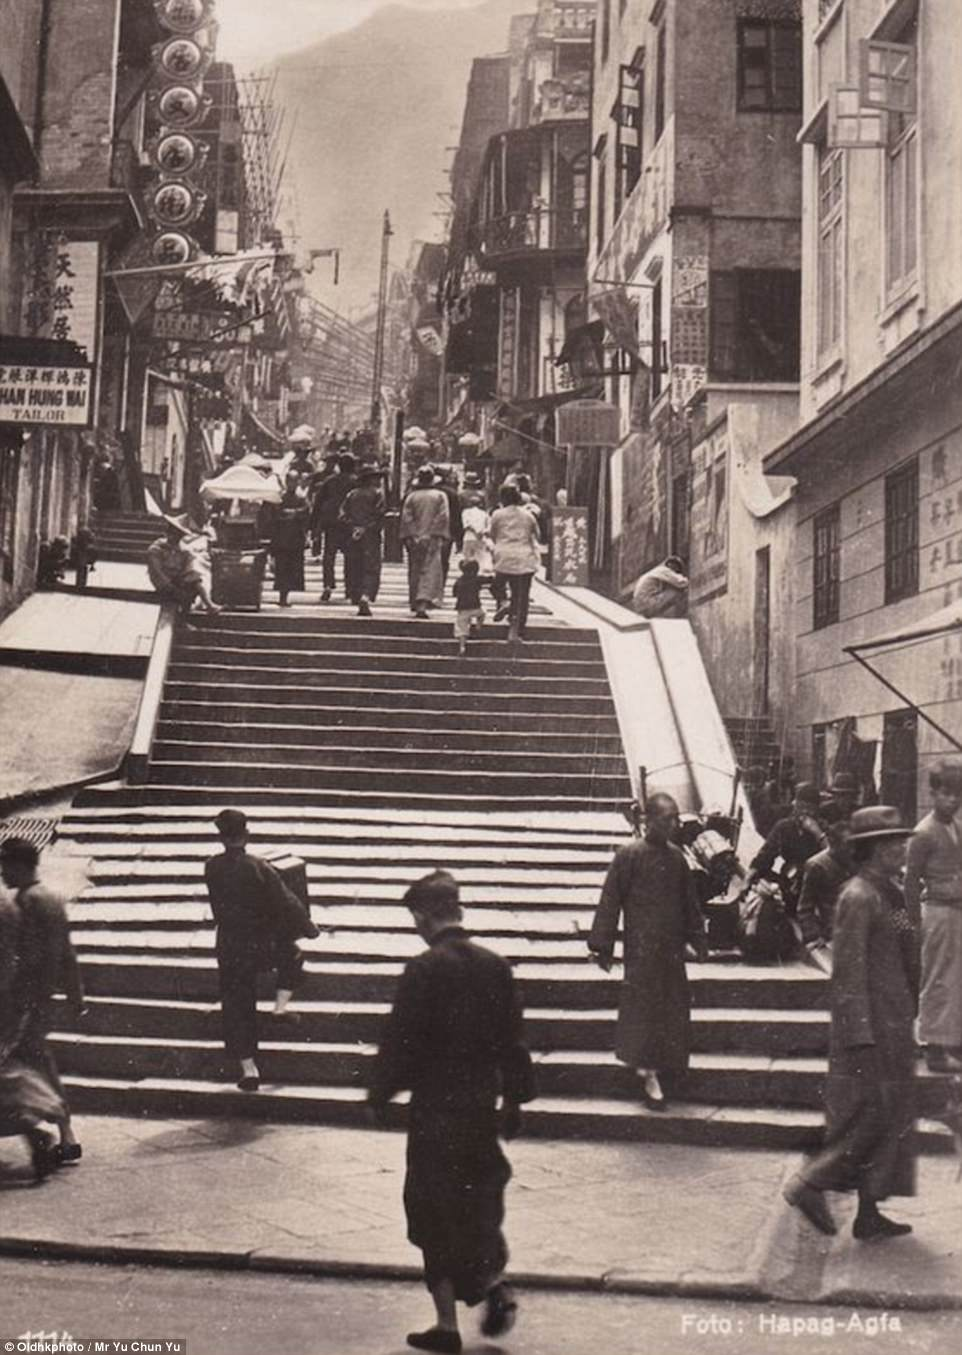 Pictured here in the 1930s, it was named   in 1858 after Hong Kong's first governor, Henry Pottinger, an English-Irishcolonial administrator